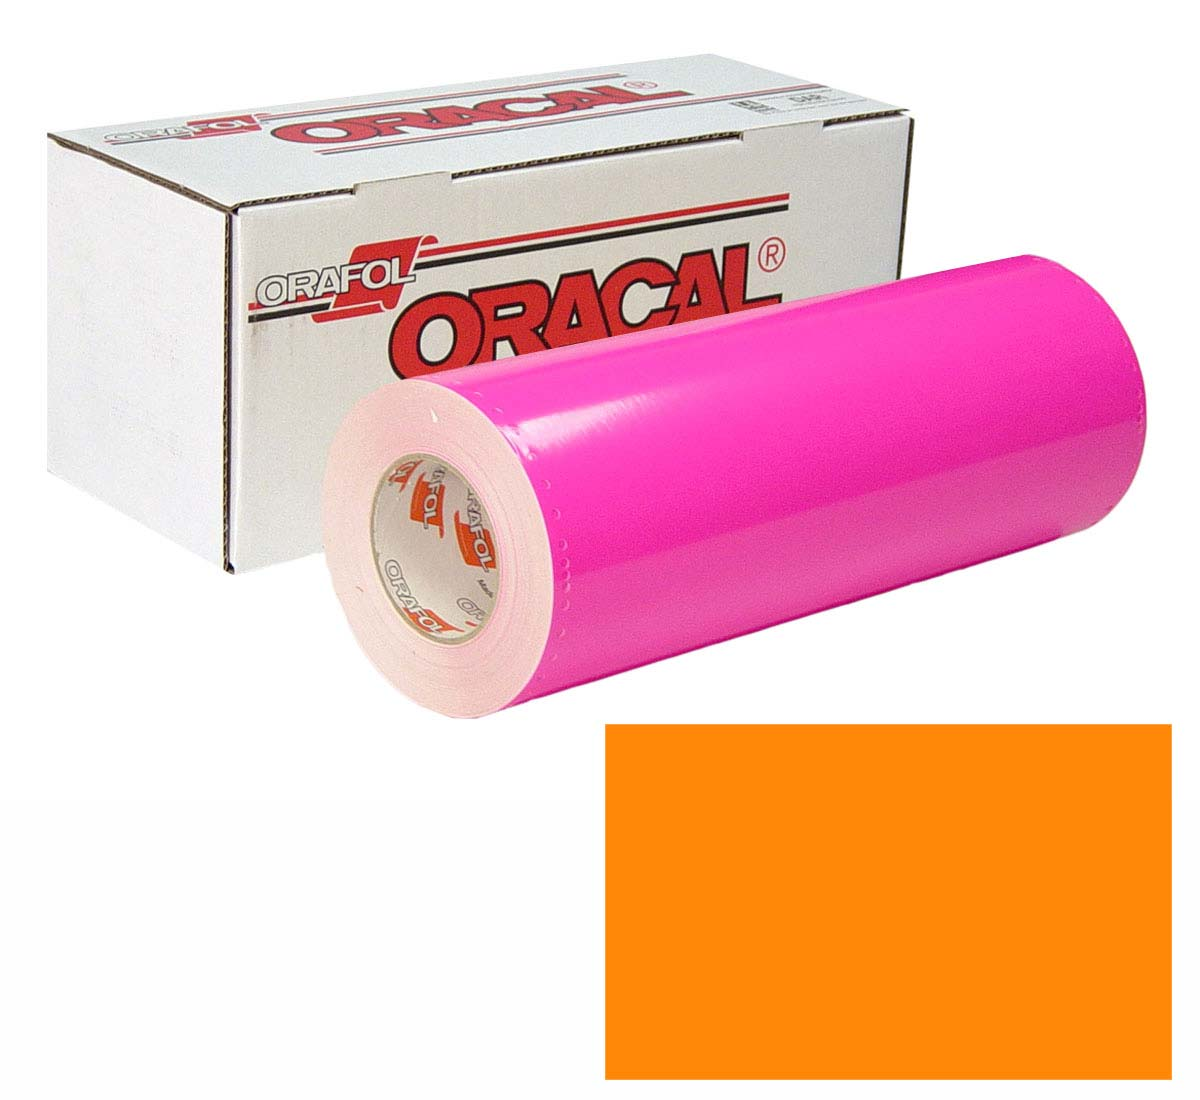 ORACAL 7510 Fluor Unp 24in X 10yd 037 Orange